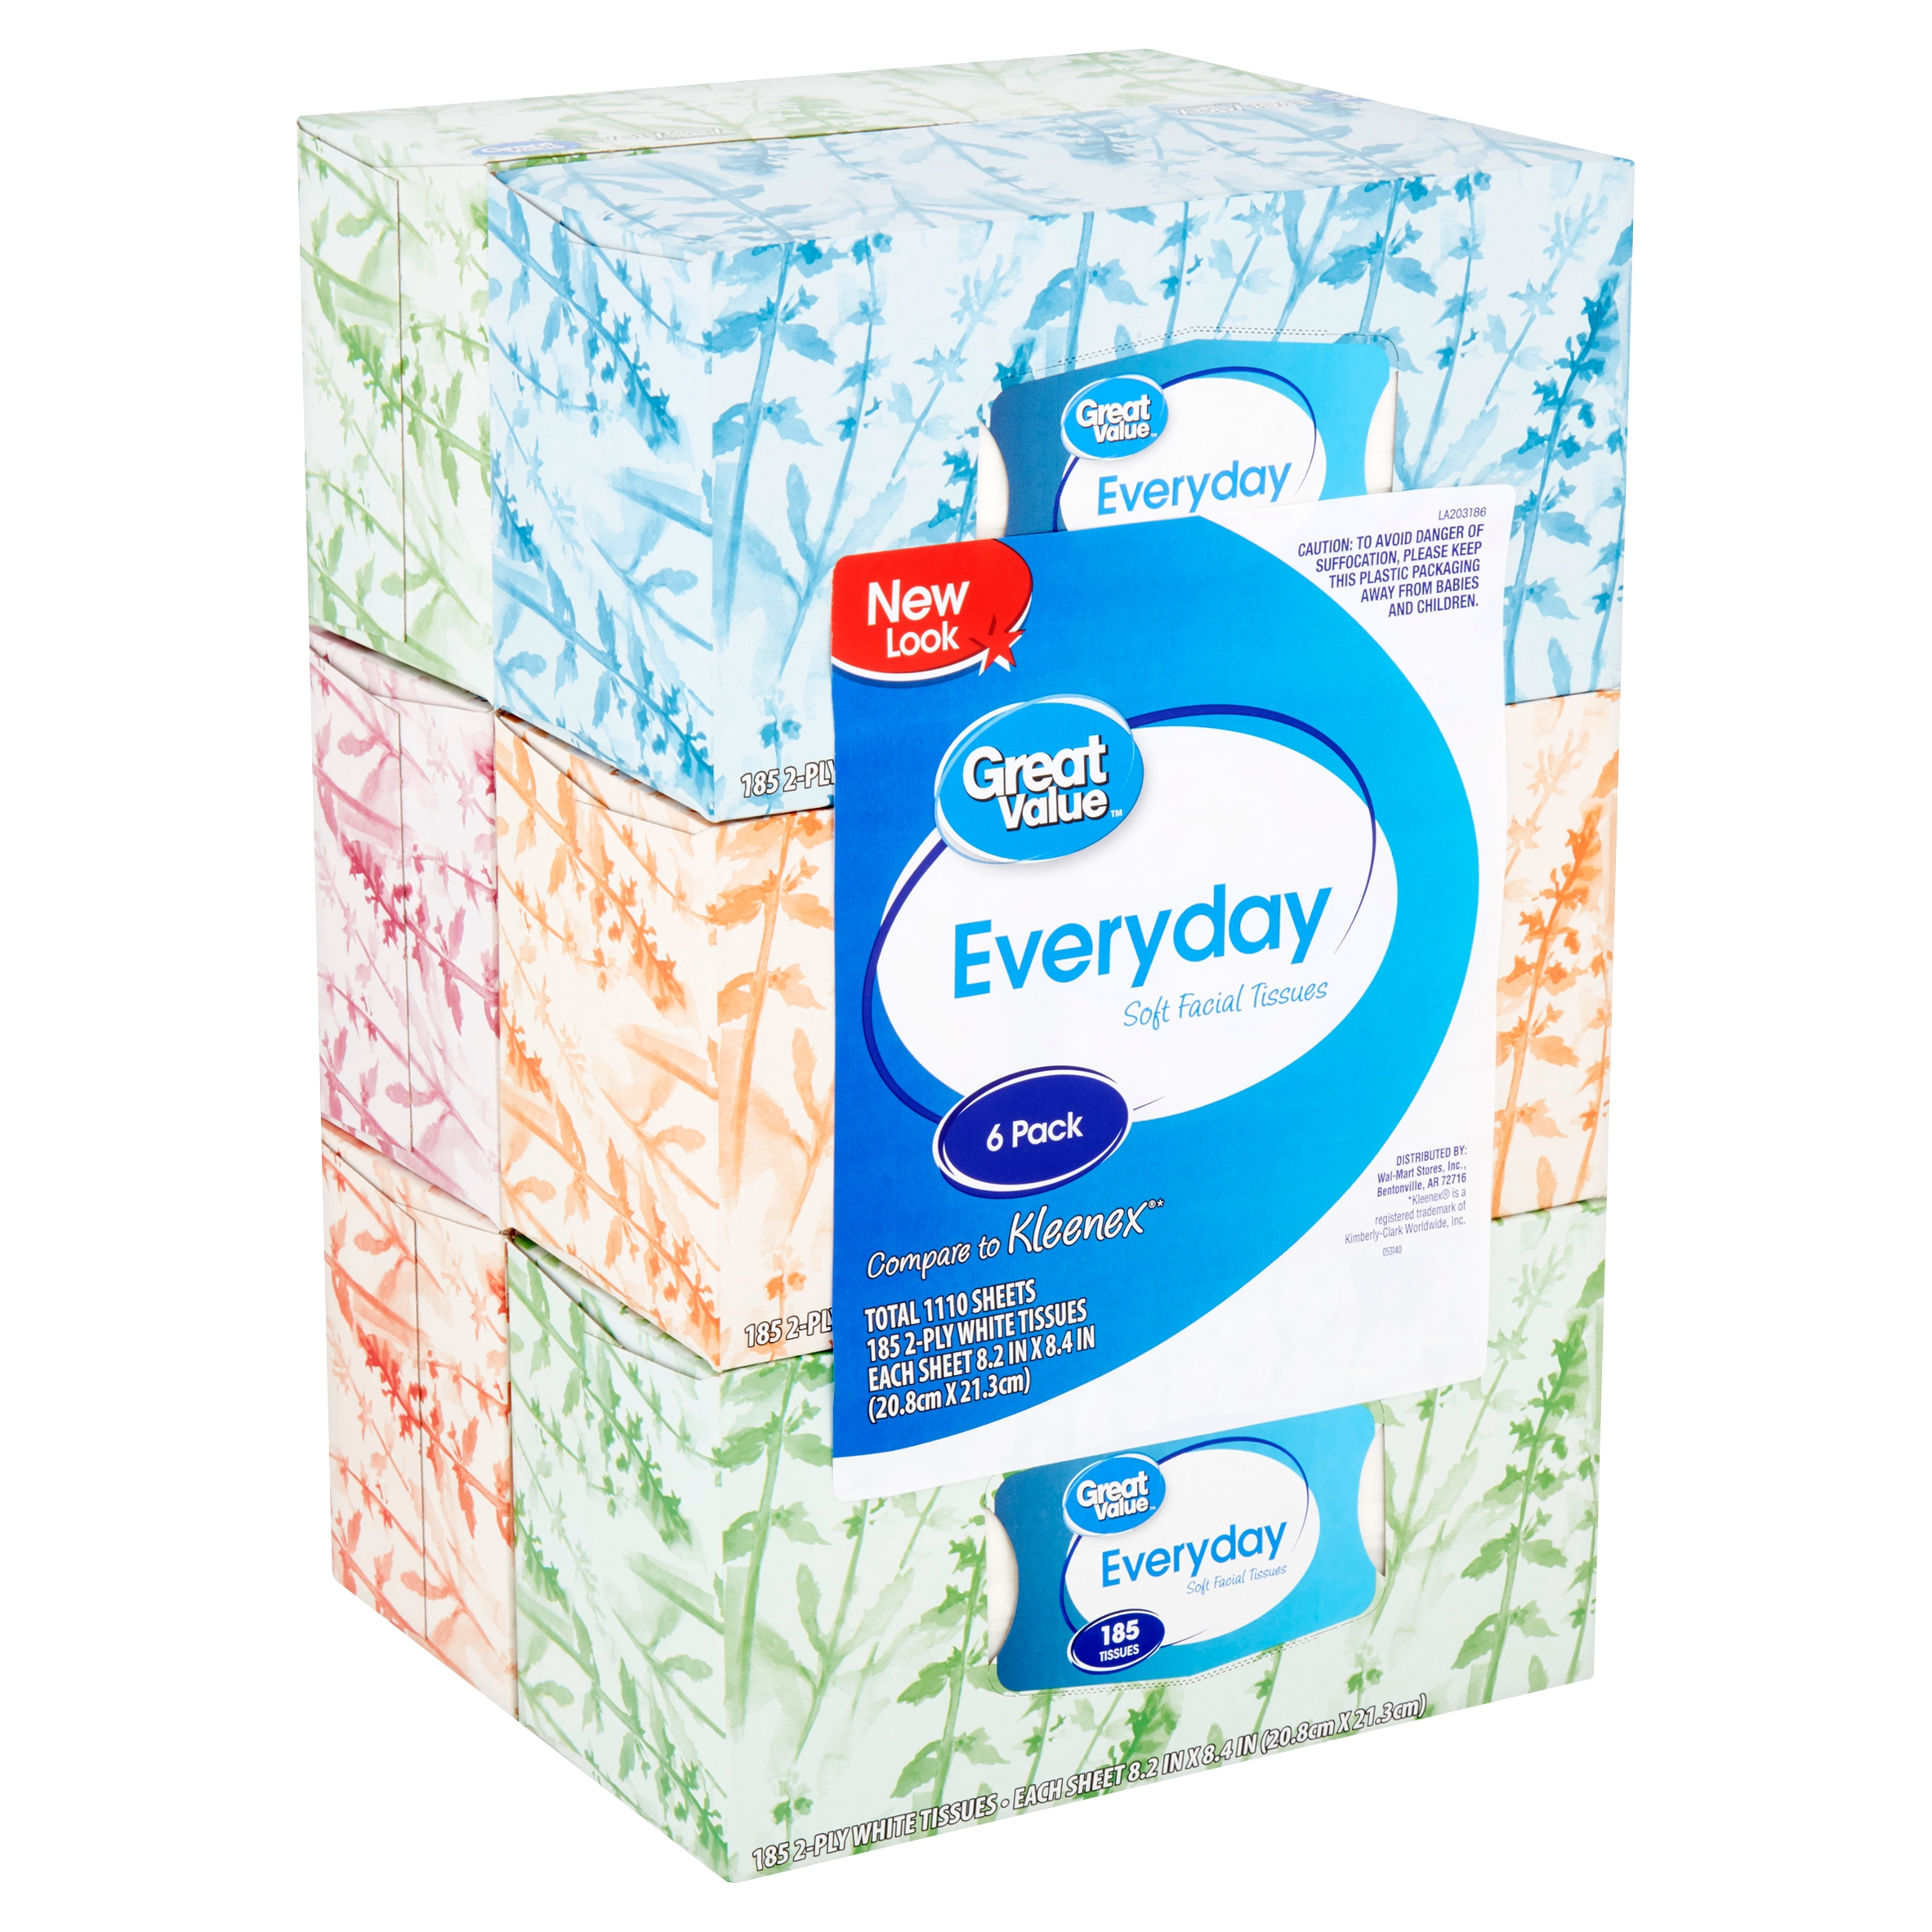 Great Value Everyday Soft Facial Tissues, 2 Ply, 185 Count, 6 Pack